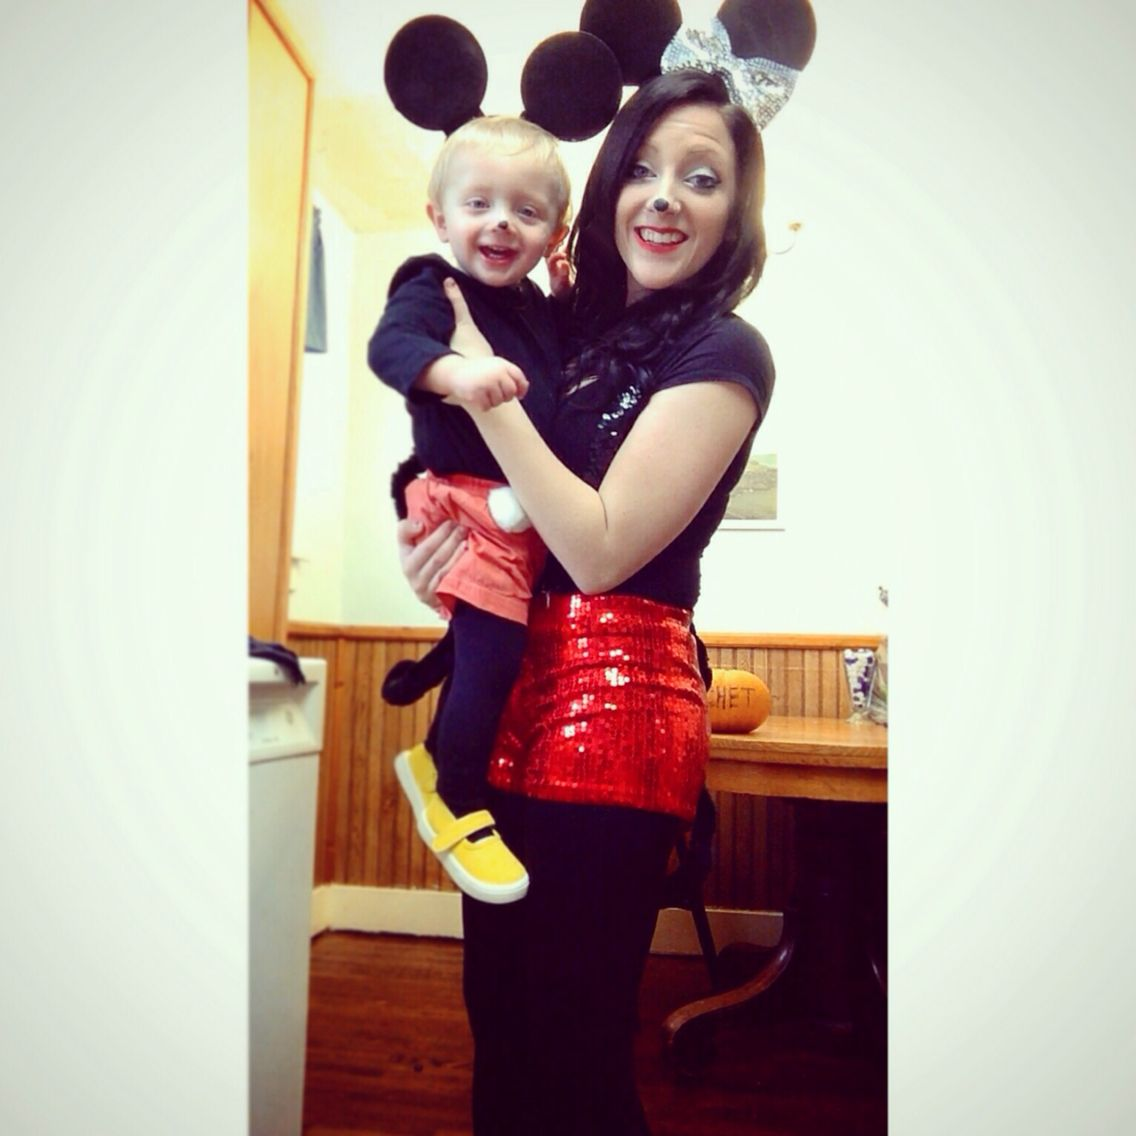 Mother and son halloween costume #mickeyandminniemouse #DIY HALLOWEENCOSTUME  sc 1 st  Pinterest : mother and son costume ideas  - Germanpascual.Com